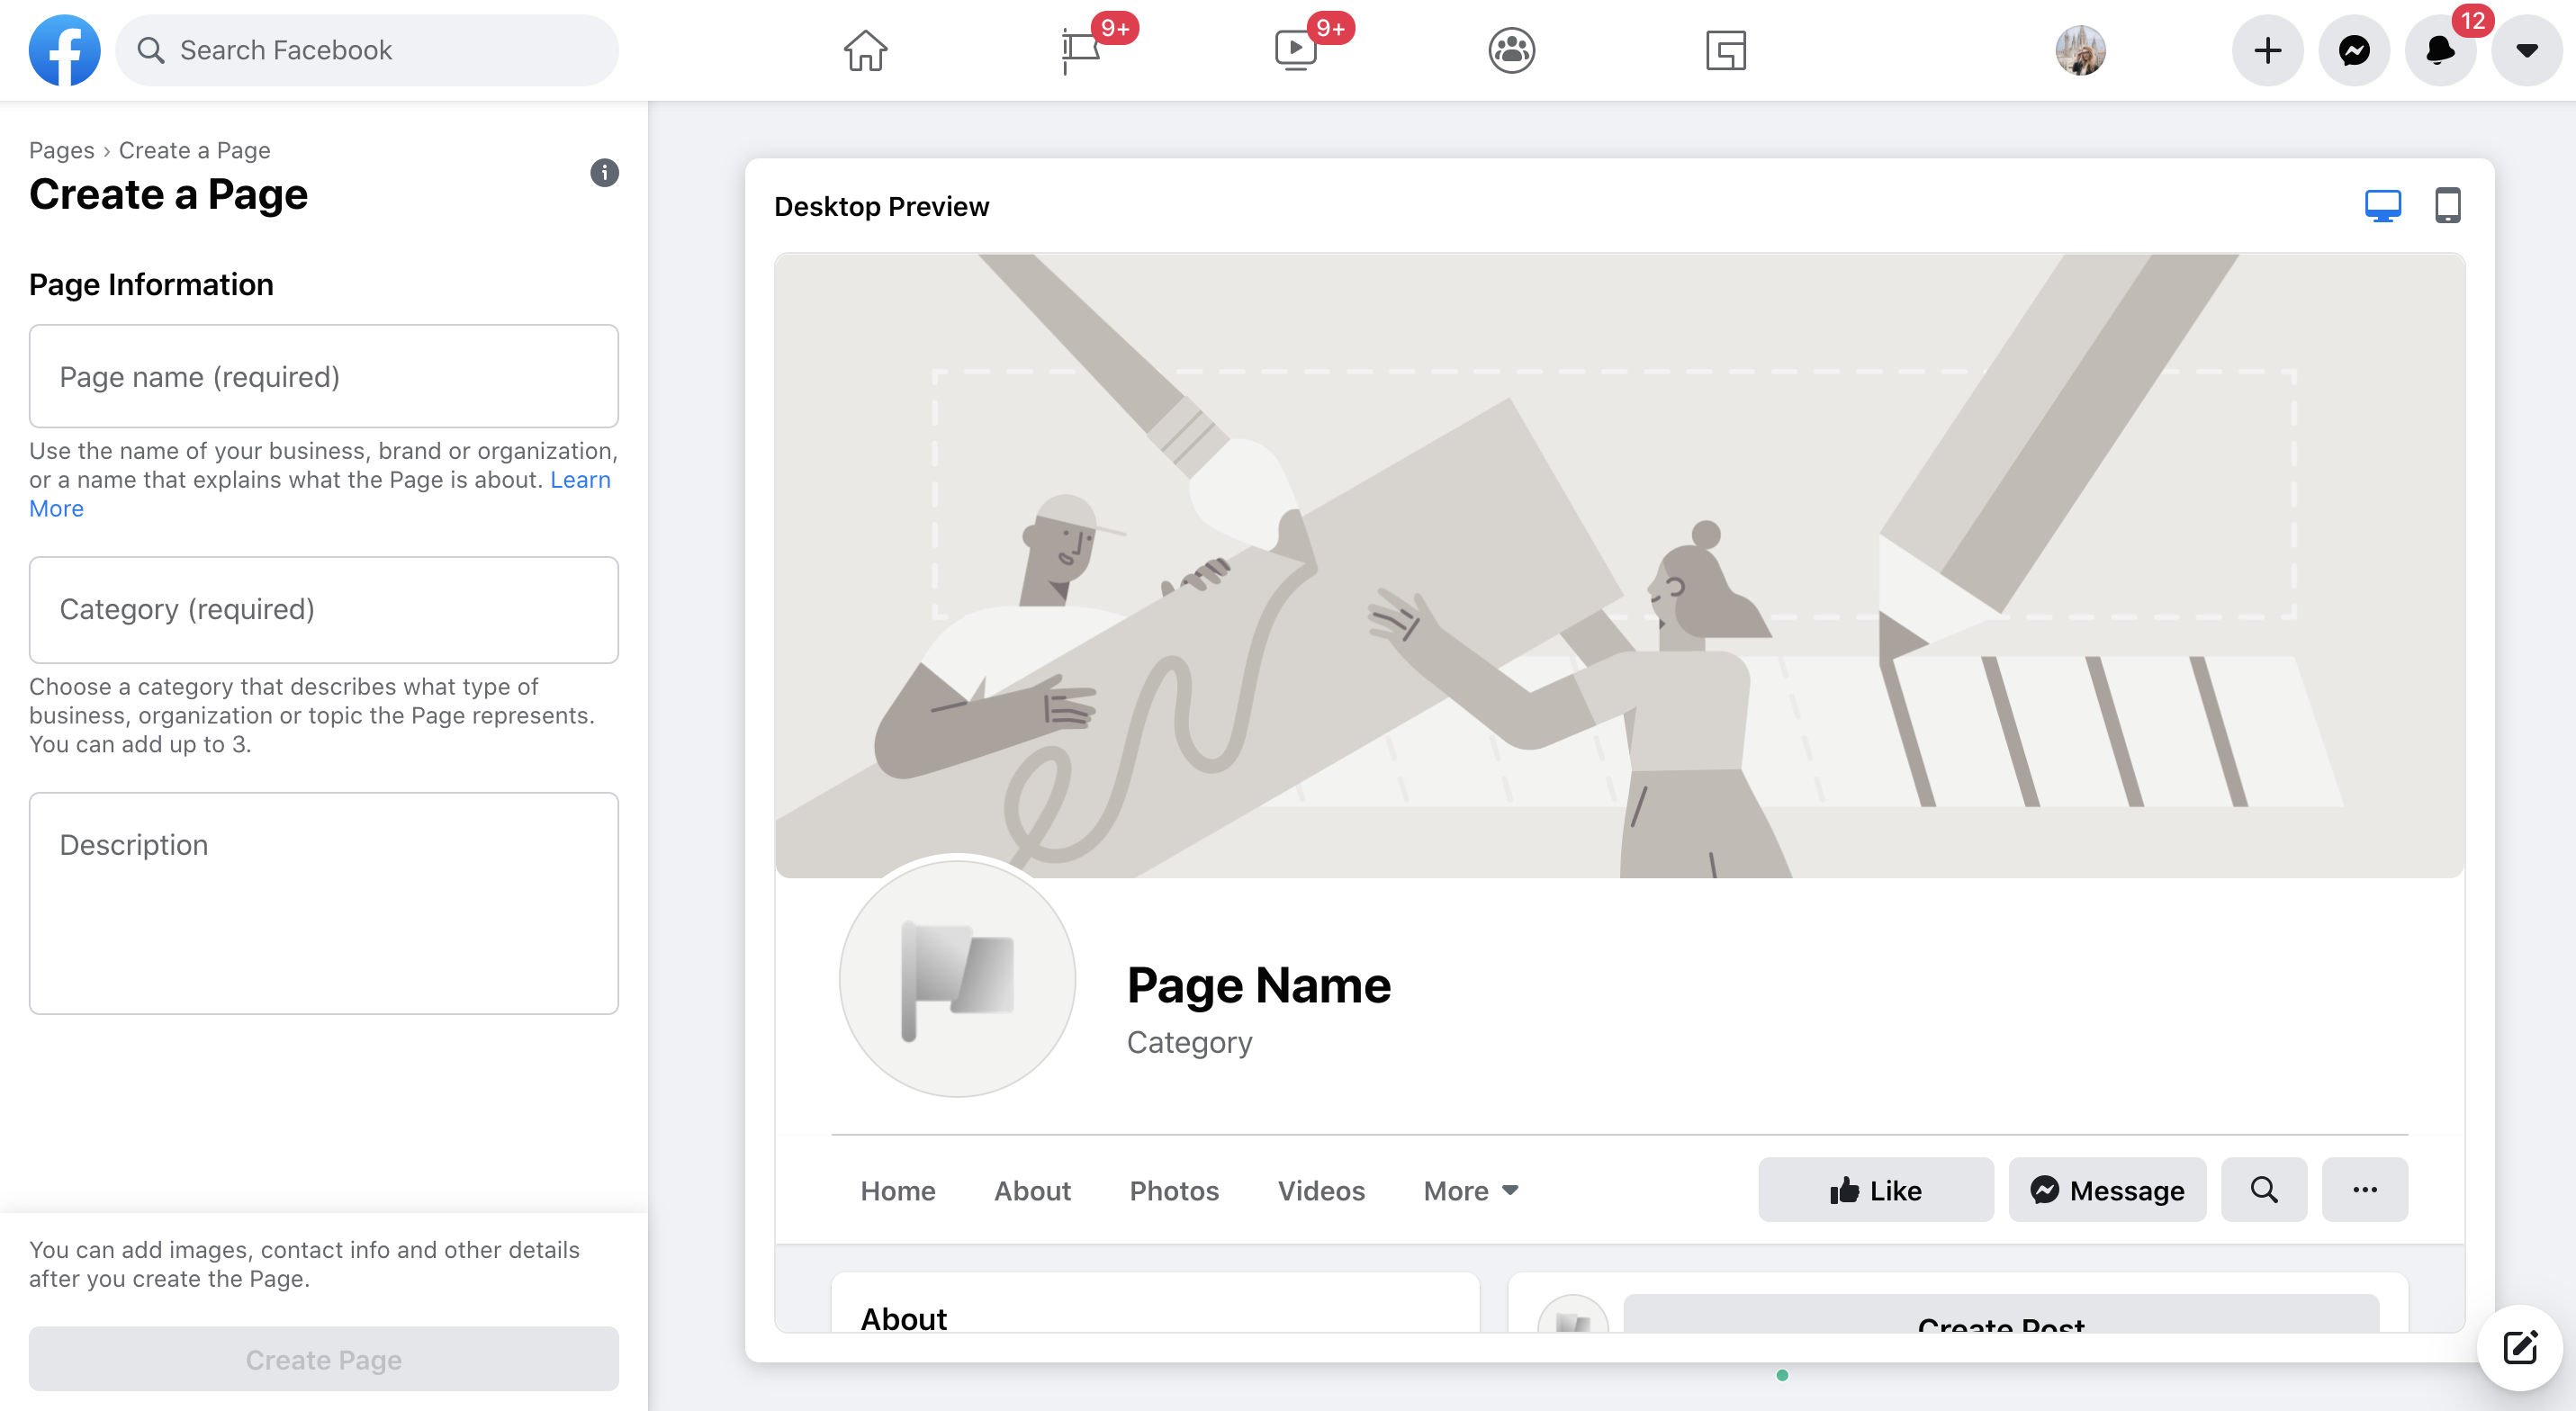 00 Setting up a Facebook page for your Airbnb rental